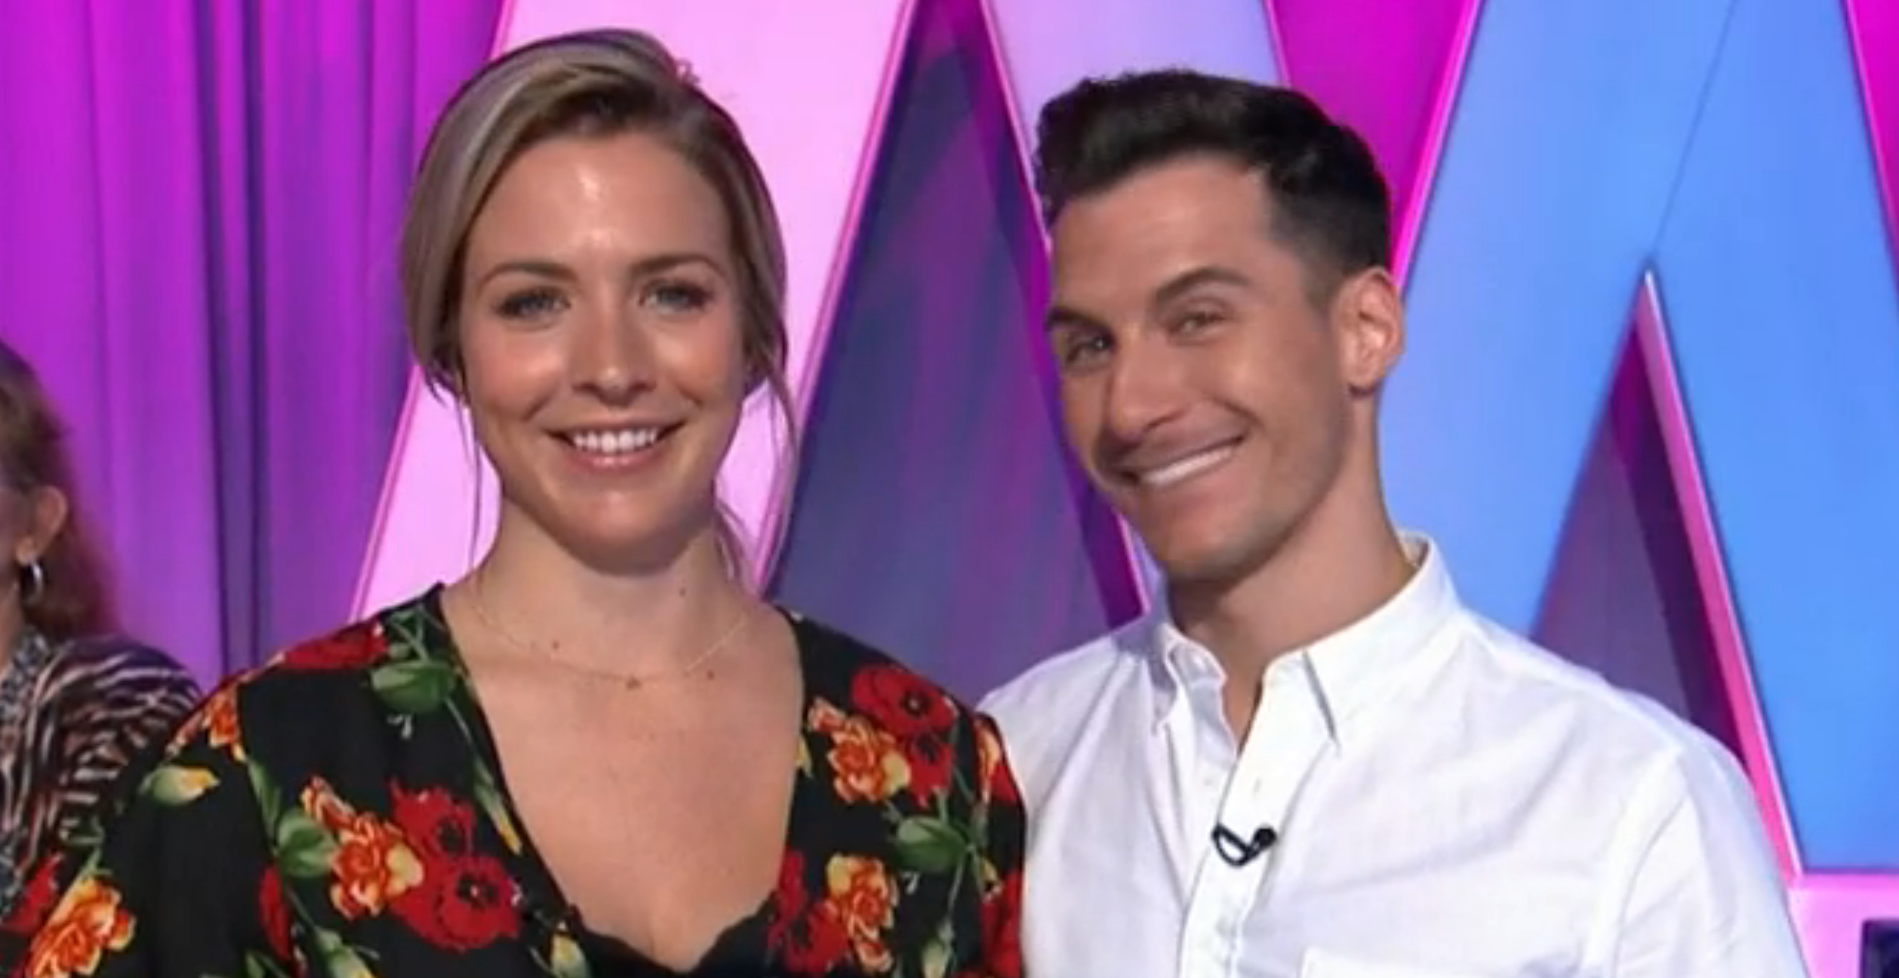 Strictly's Gorka Marquez reveals he was 'scared' as Gemma Atkinson suffered a 'massive' bleed after giving birth